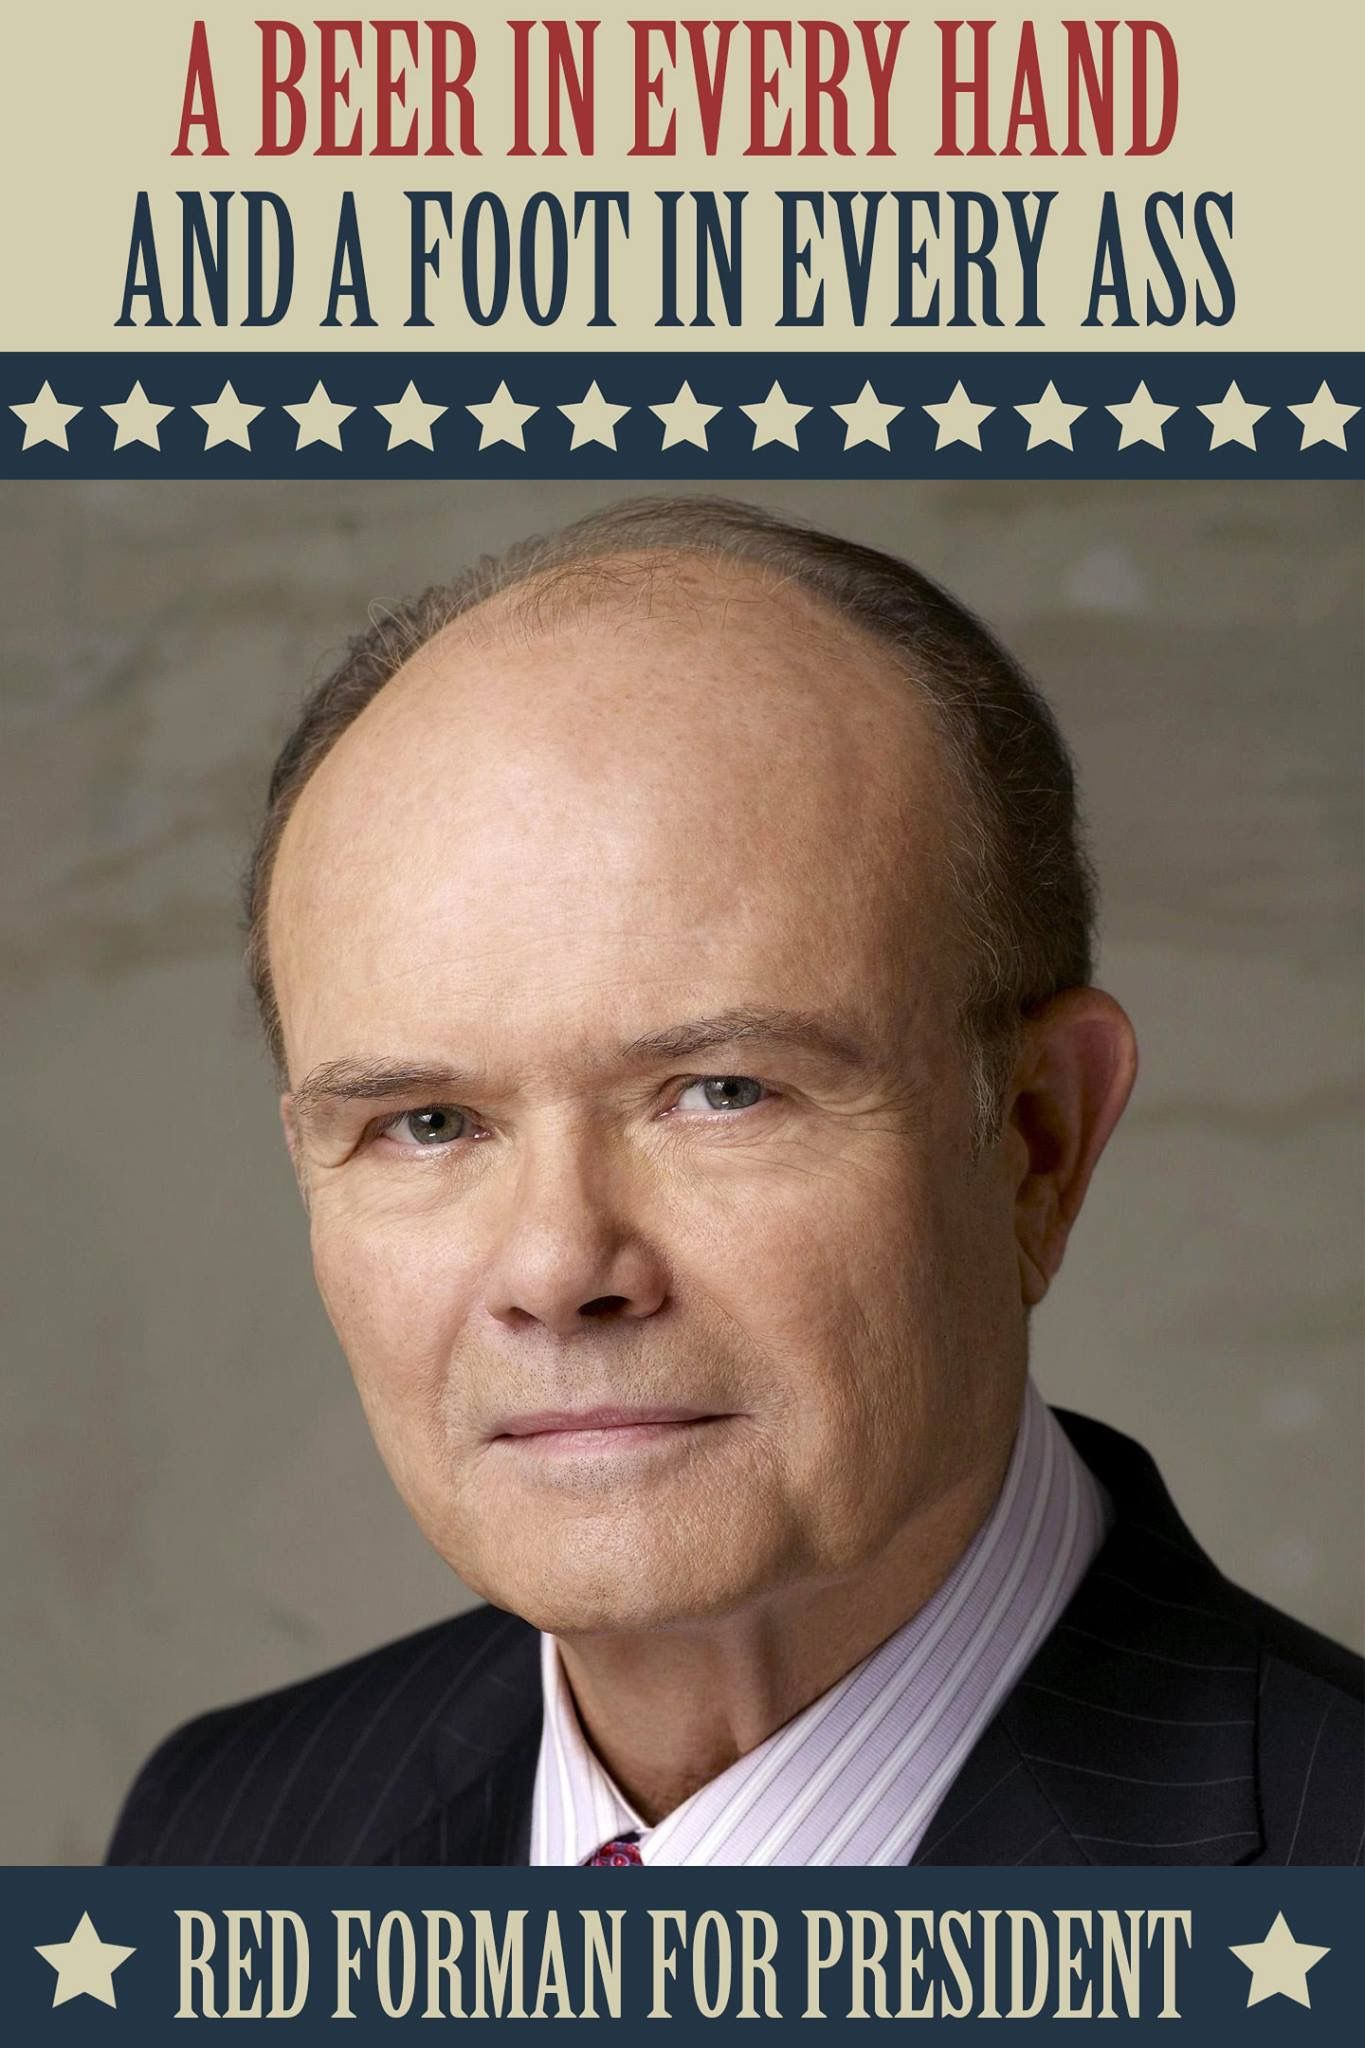 Red forman for president cool pictures best funny pictures comedy funny texts